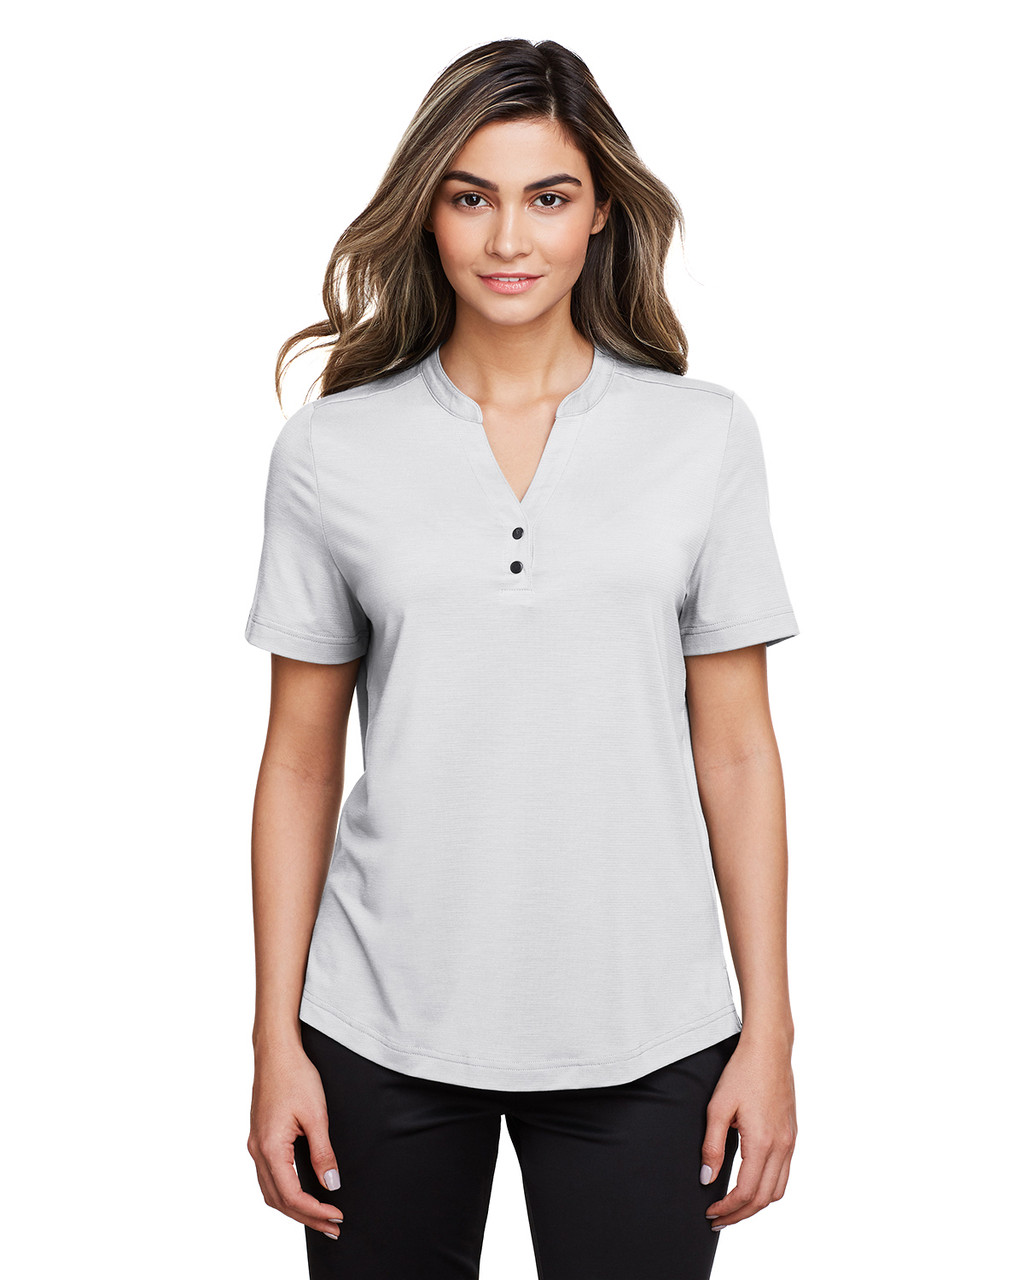 Platinum - NE100W North End Ladies' Jaq Snap-Up Stretch Performance Polo | BlankClothing.ca